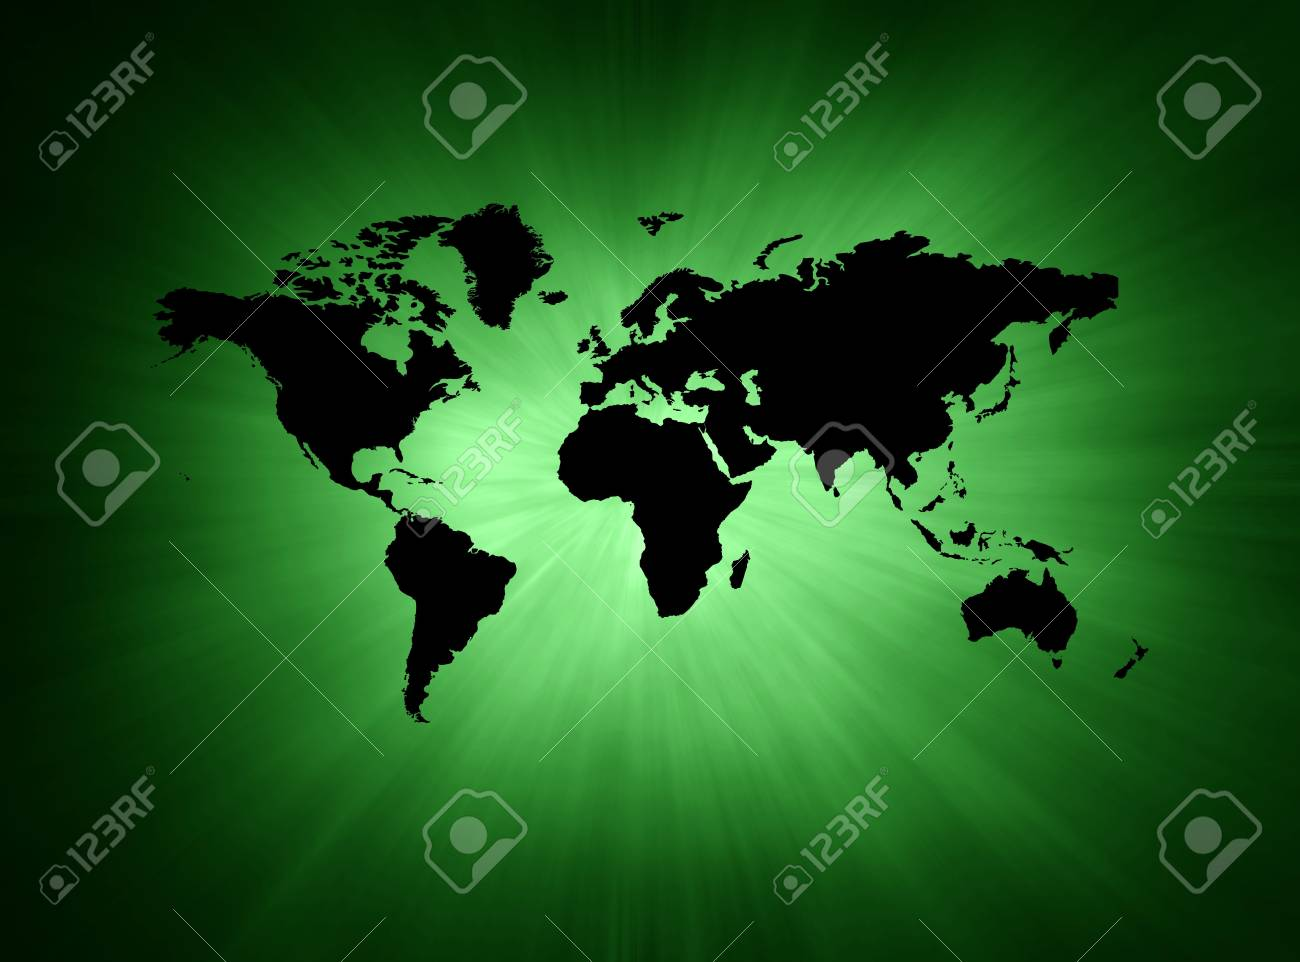 Green and black abstract illustration background with map Stock Photo - 3924439